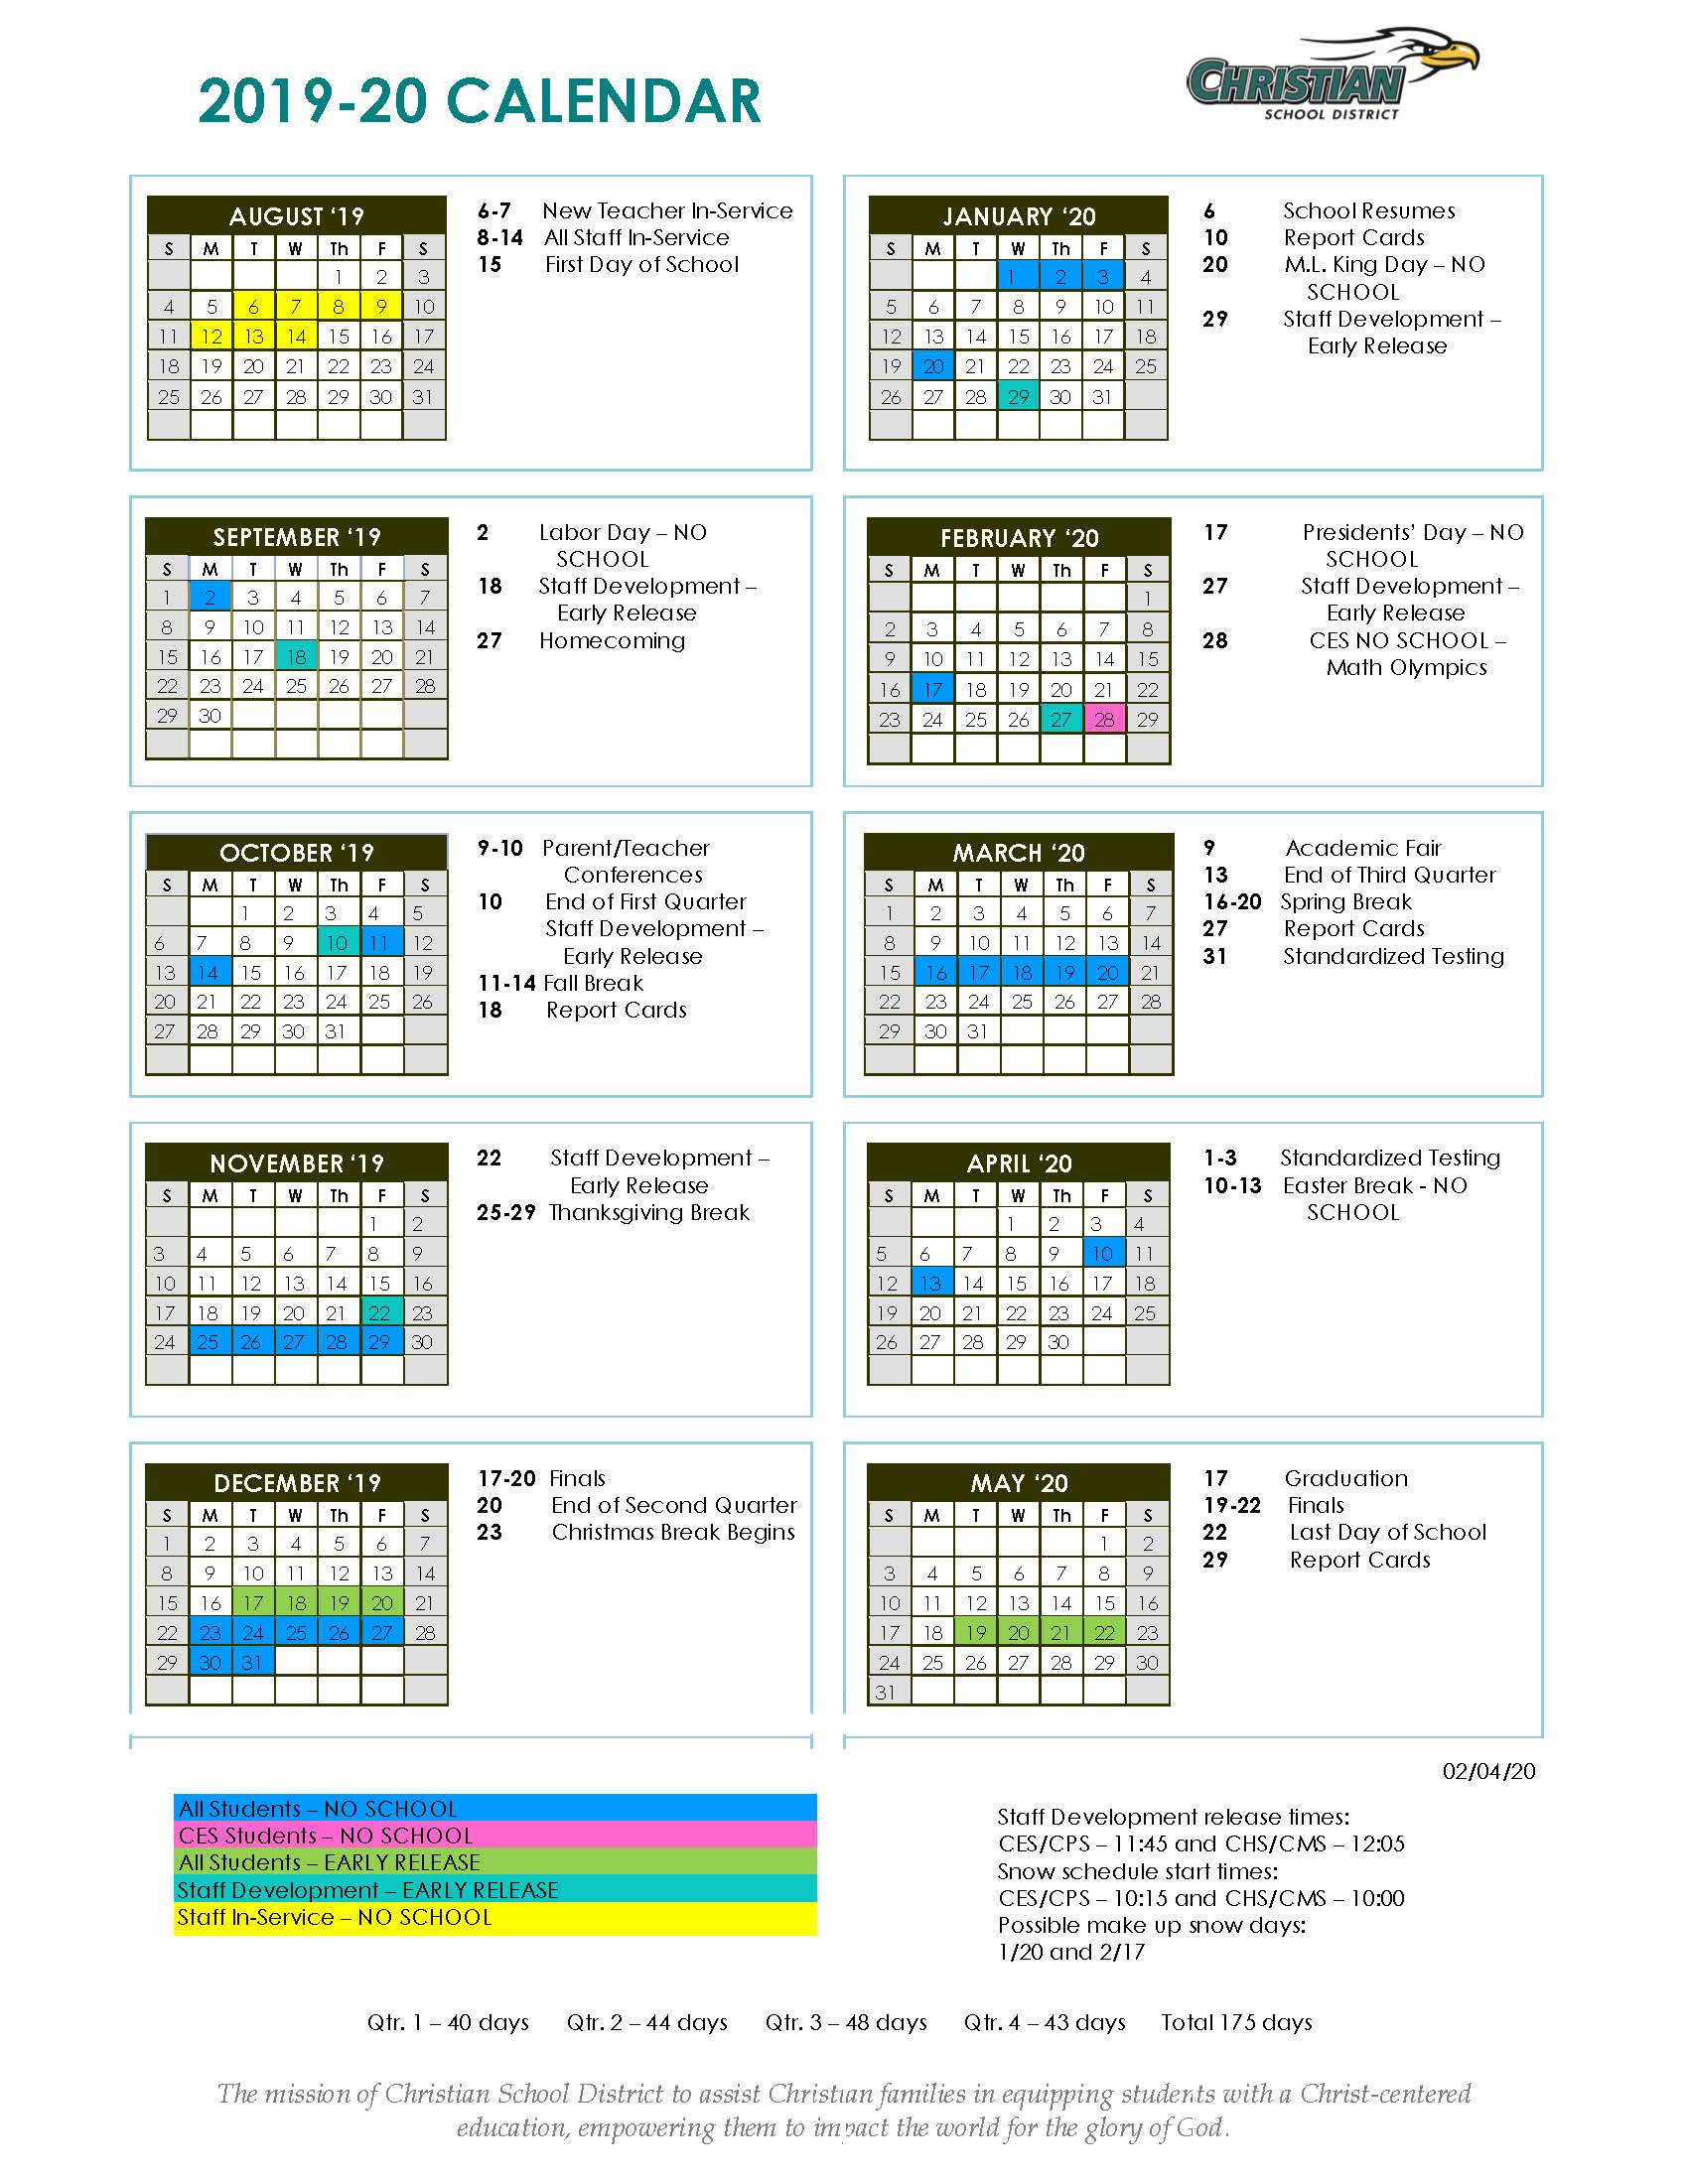 Annual Academic Calendar - Christian School District Within Saint Charles Communty College Calendar 2020